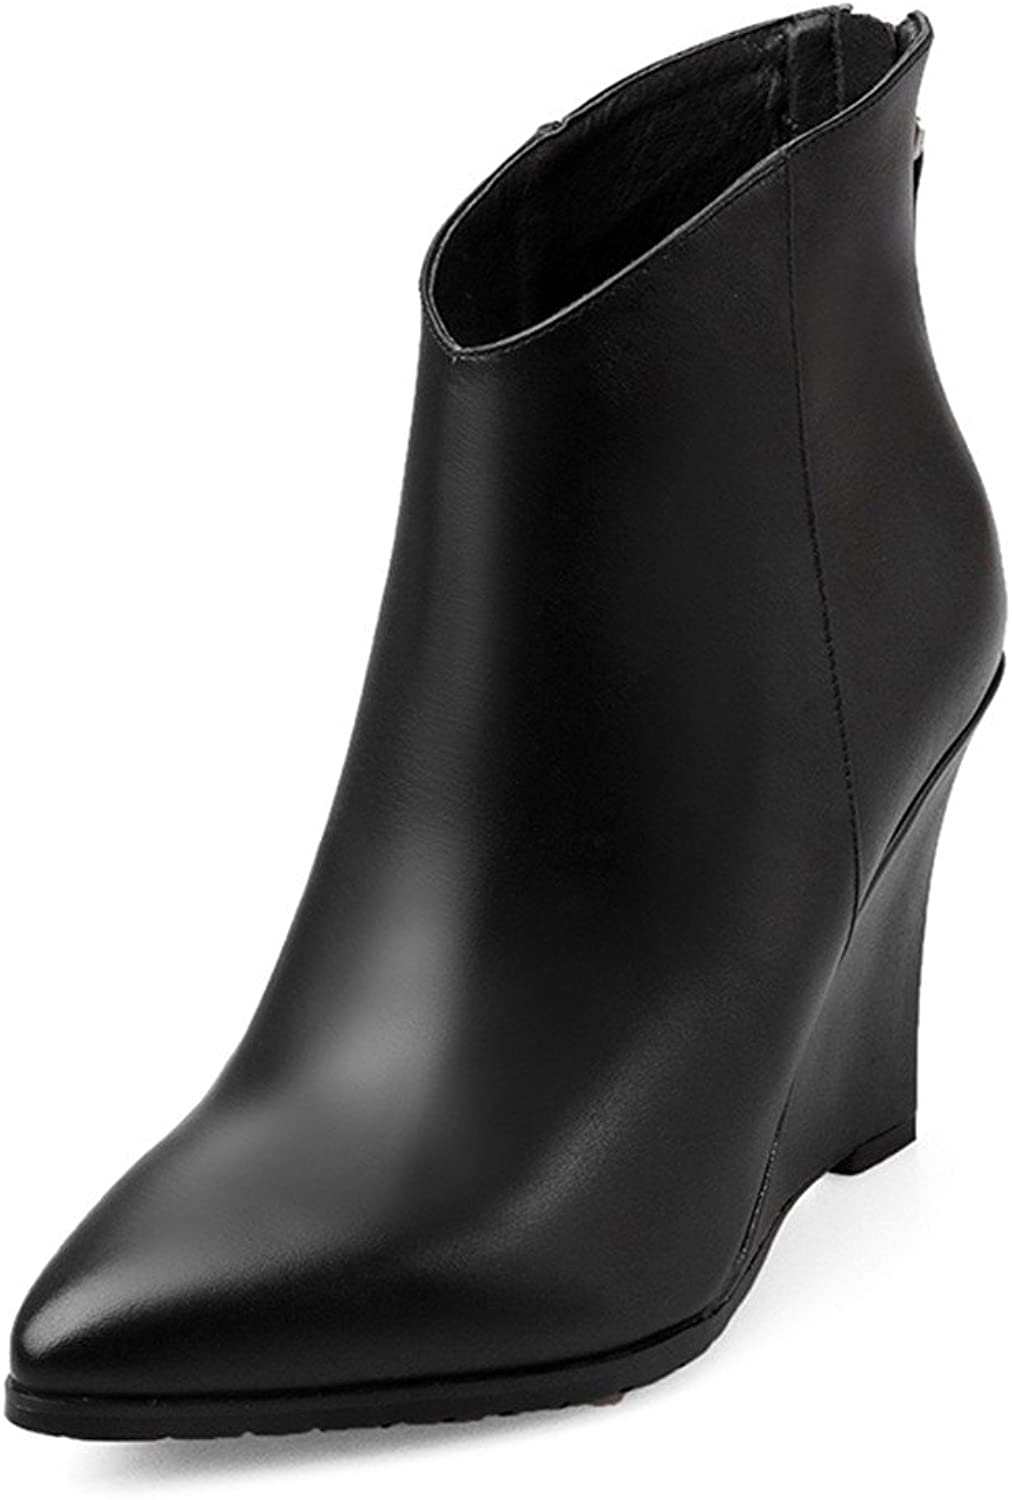 MINIVOG Women's Back Zipper Top-Grain Leather Pointed Toe Wedge Heel Ankle Boots Black